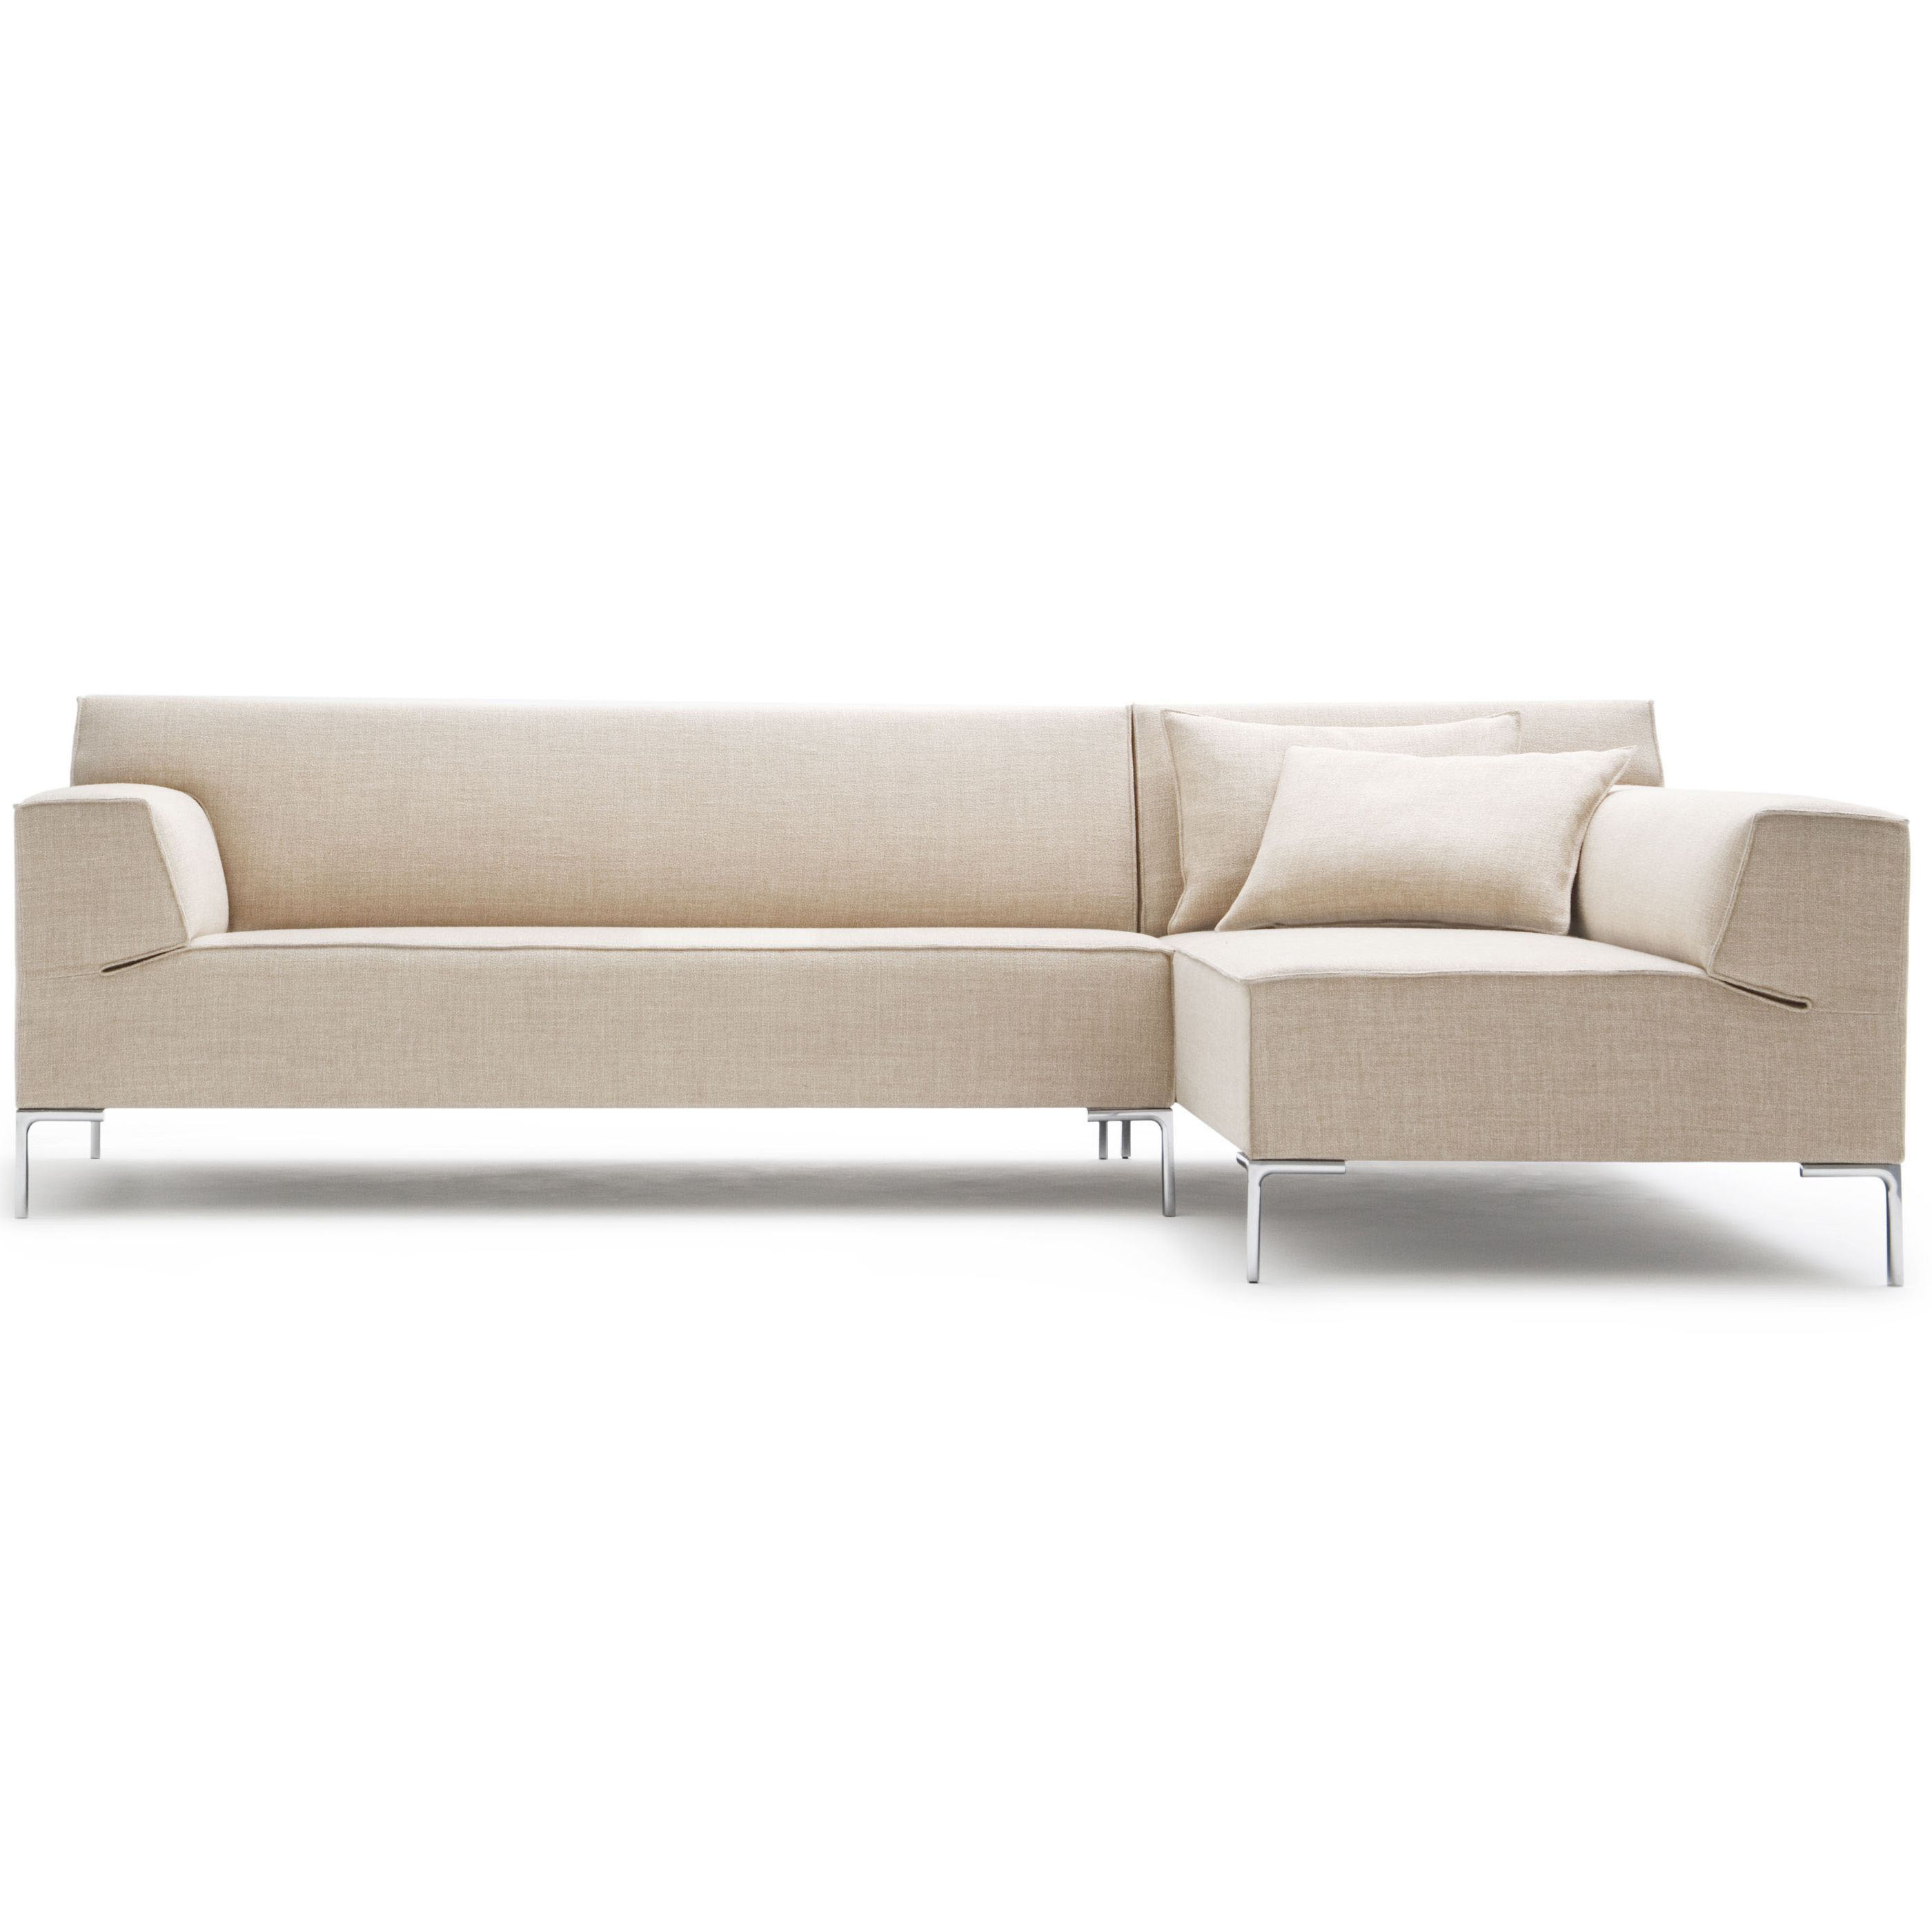 Design On Stock Bank.Design On Stock Bloq Bank 3 Zits 1 Arm Chaise Longue Flinders